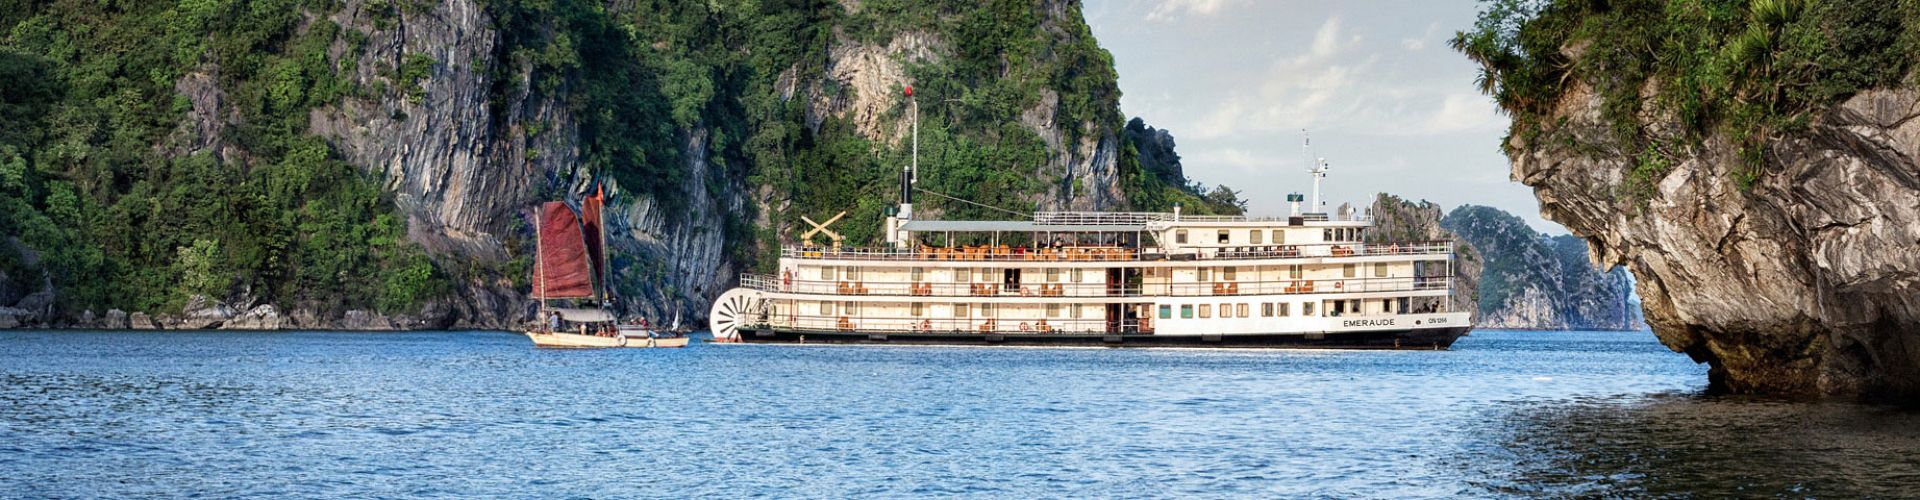 Deluxe Cruises Halong Bay